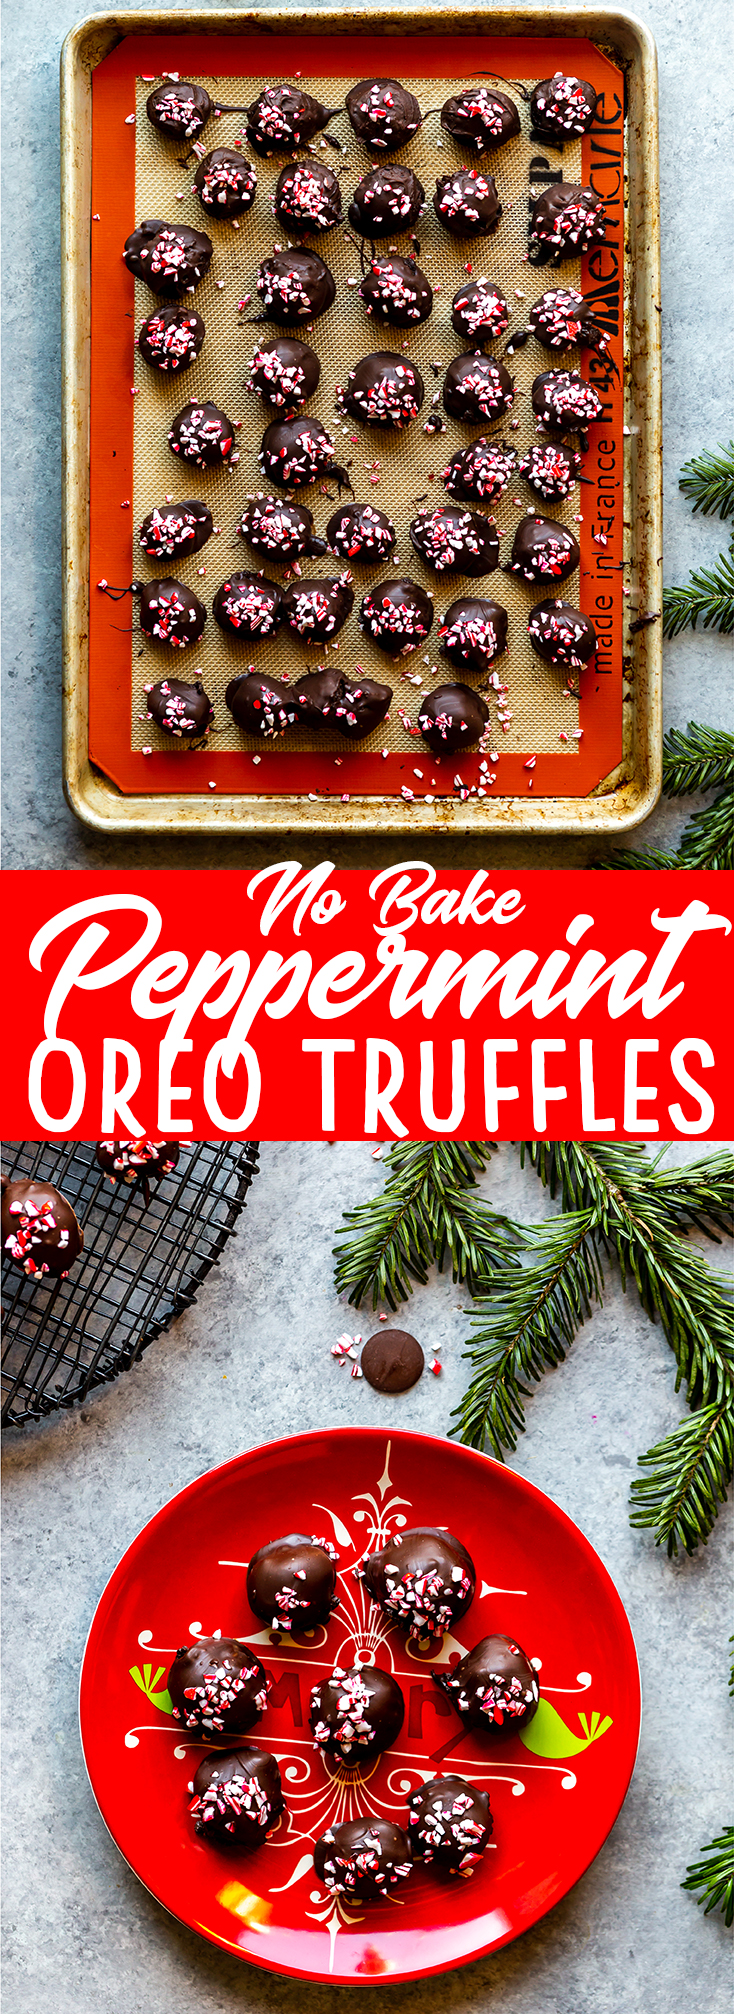 These easy, four ingredient, no bake peppermint Oreo truffles are full of peppermint and chocolate and are perfect to bring to your next Christmas cookie exchange! |Christmas Oreo Balls | Peppermint Oreo Balls | No Bake Christmas Cookie | Easy Truffle Recipe | How to make reo truffles